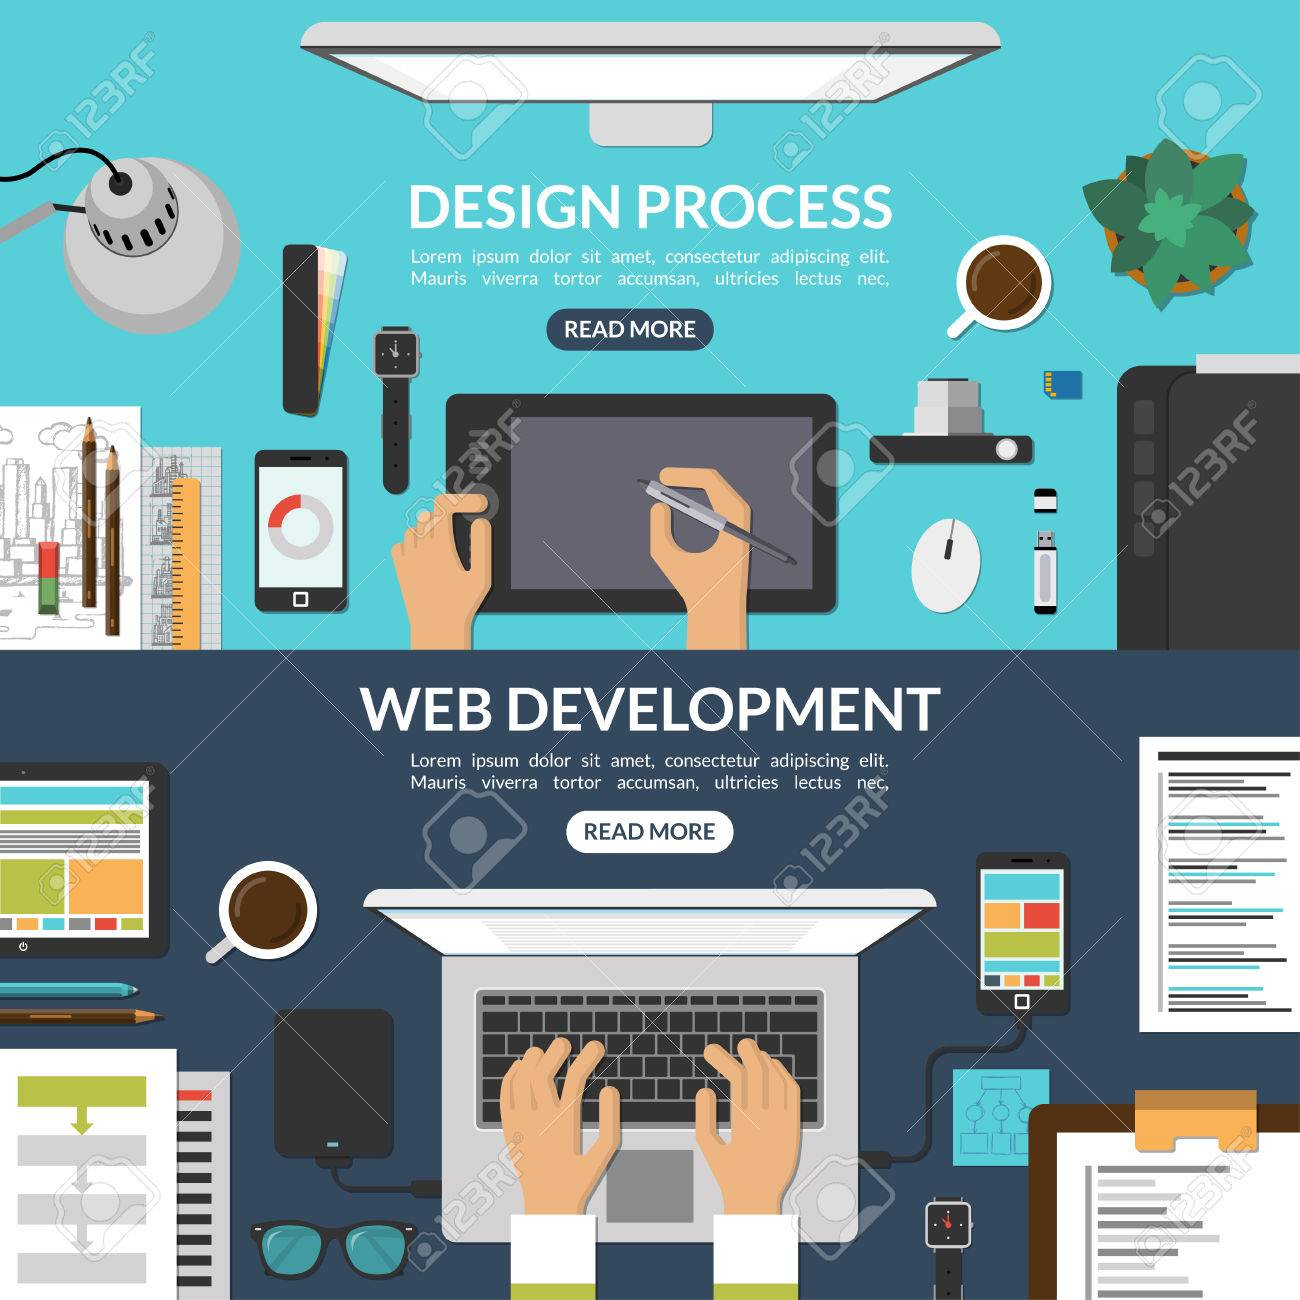 Web And Graphic Design Process And Web Development Concept Background Royalty Free Cliparts Vectors And Stock Illustration Image 47709990